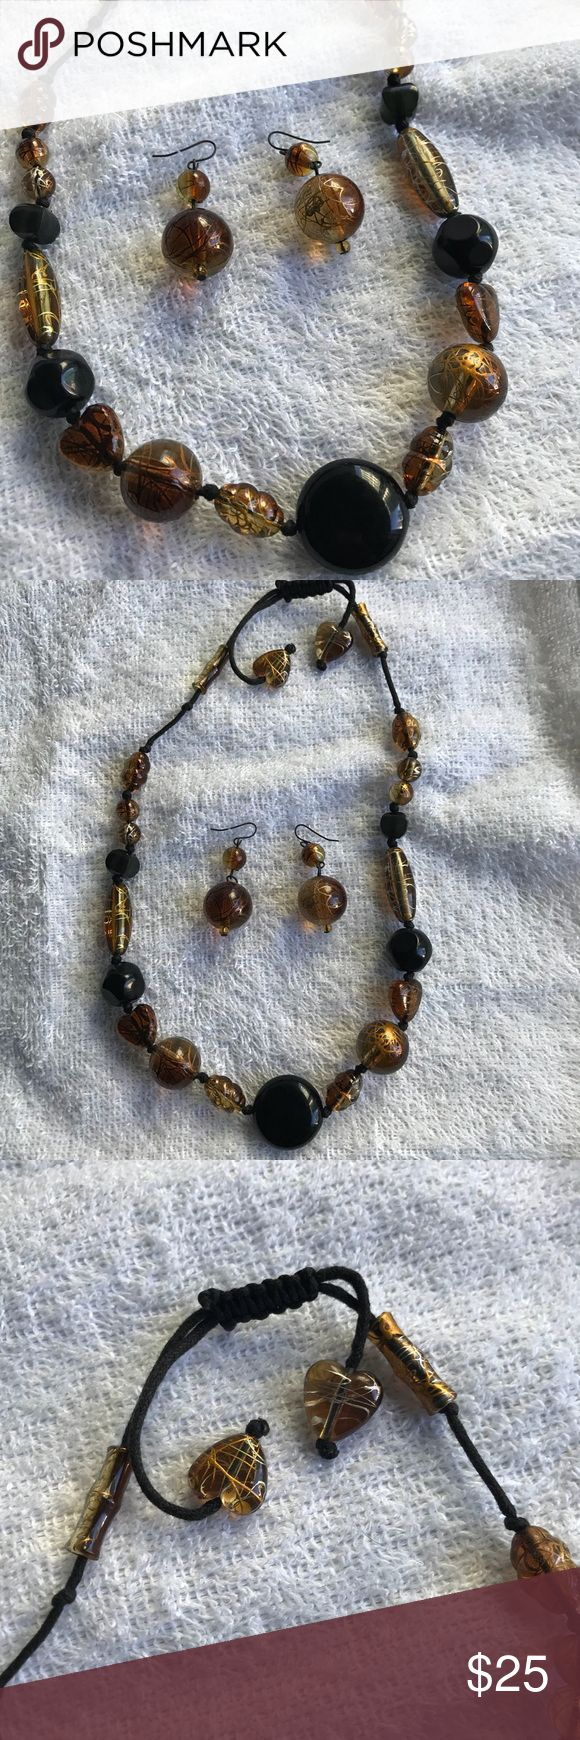 Necklace & Earring Set Pretty bohemian necklace and earring set in amber and black onyx colors. Dress it up or down for a look that's on trend! EUC. Jewelry Necklaces